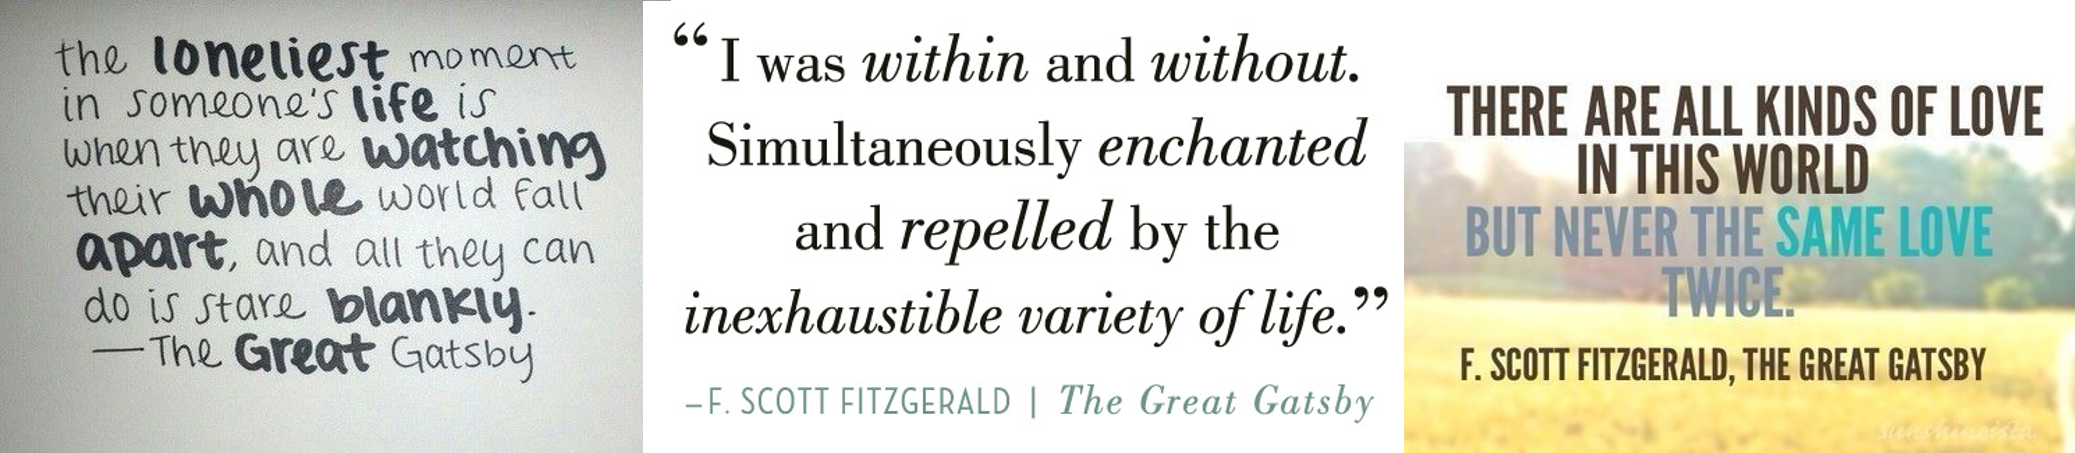 a review of the story of the great gatsby Wisely, mr fitzgerald tells his story through the medium of nick carroway [sic], who, after graduation from yale in 1915 had participated in the delayed teutonic migration known as the great war.